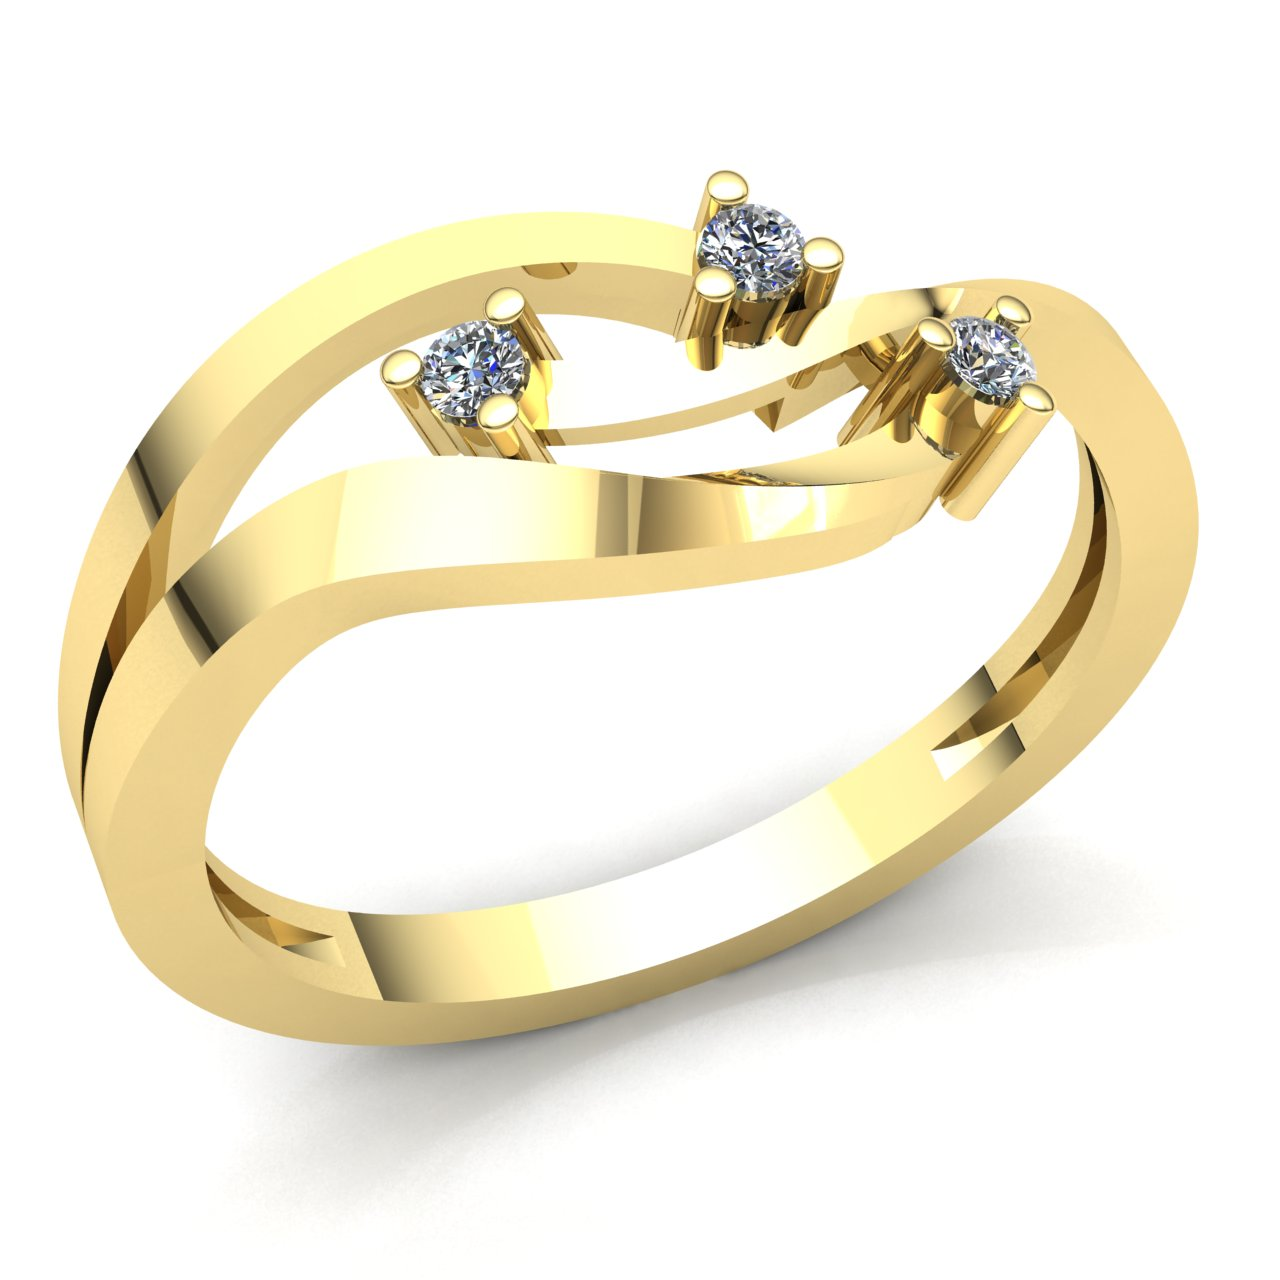 c ring present collections v stone t engagement wedding w gold jewellers in past diamond three rings peoples future